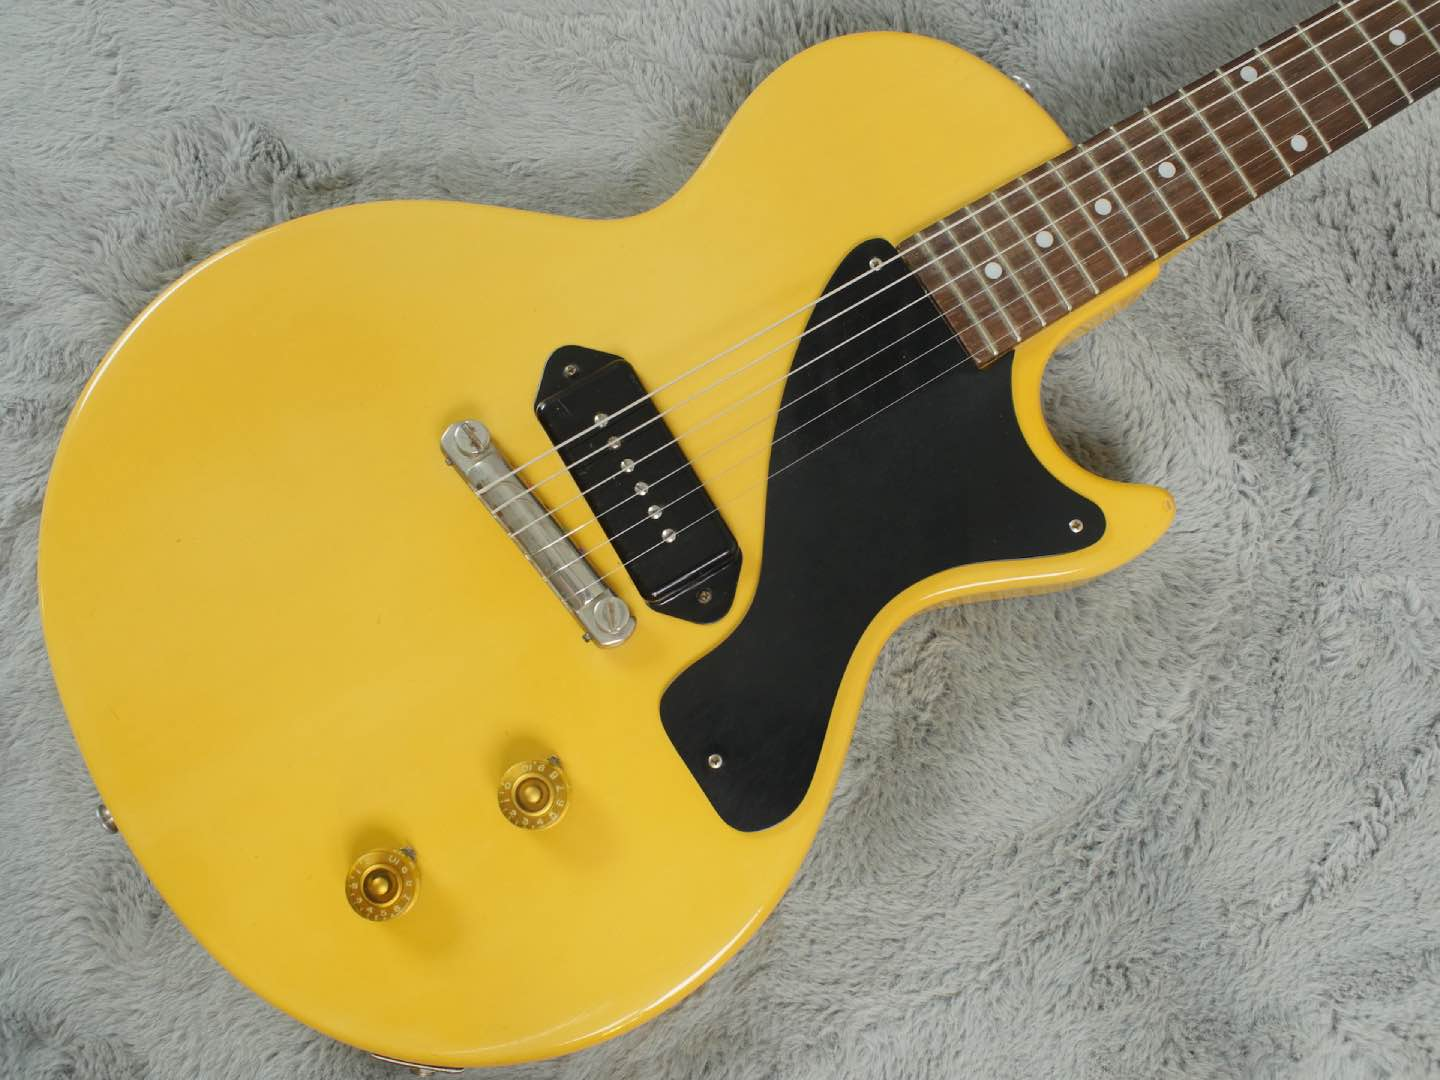 1955 Gibson Les Paul Junior TV Yellow Maple body + OHSC - near MINT